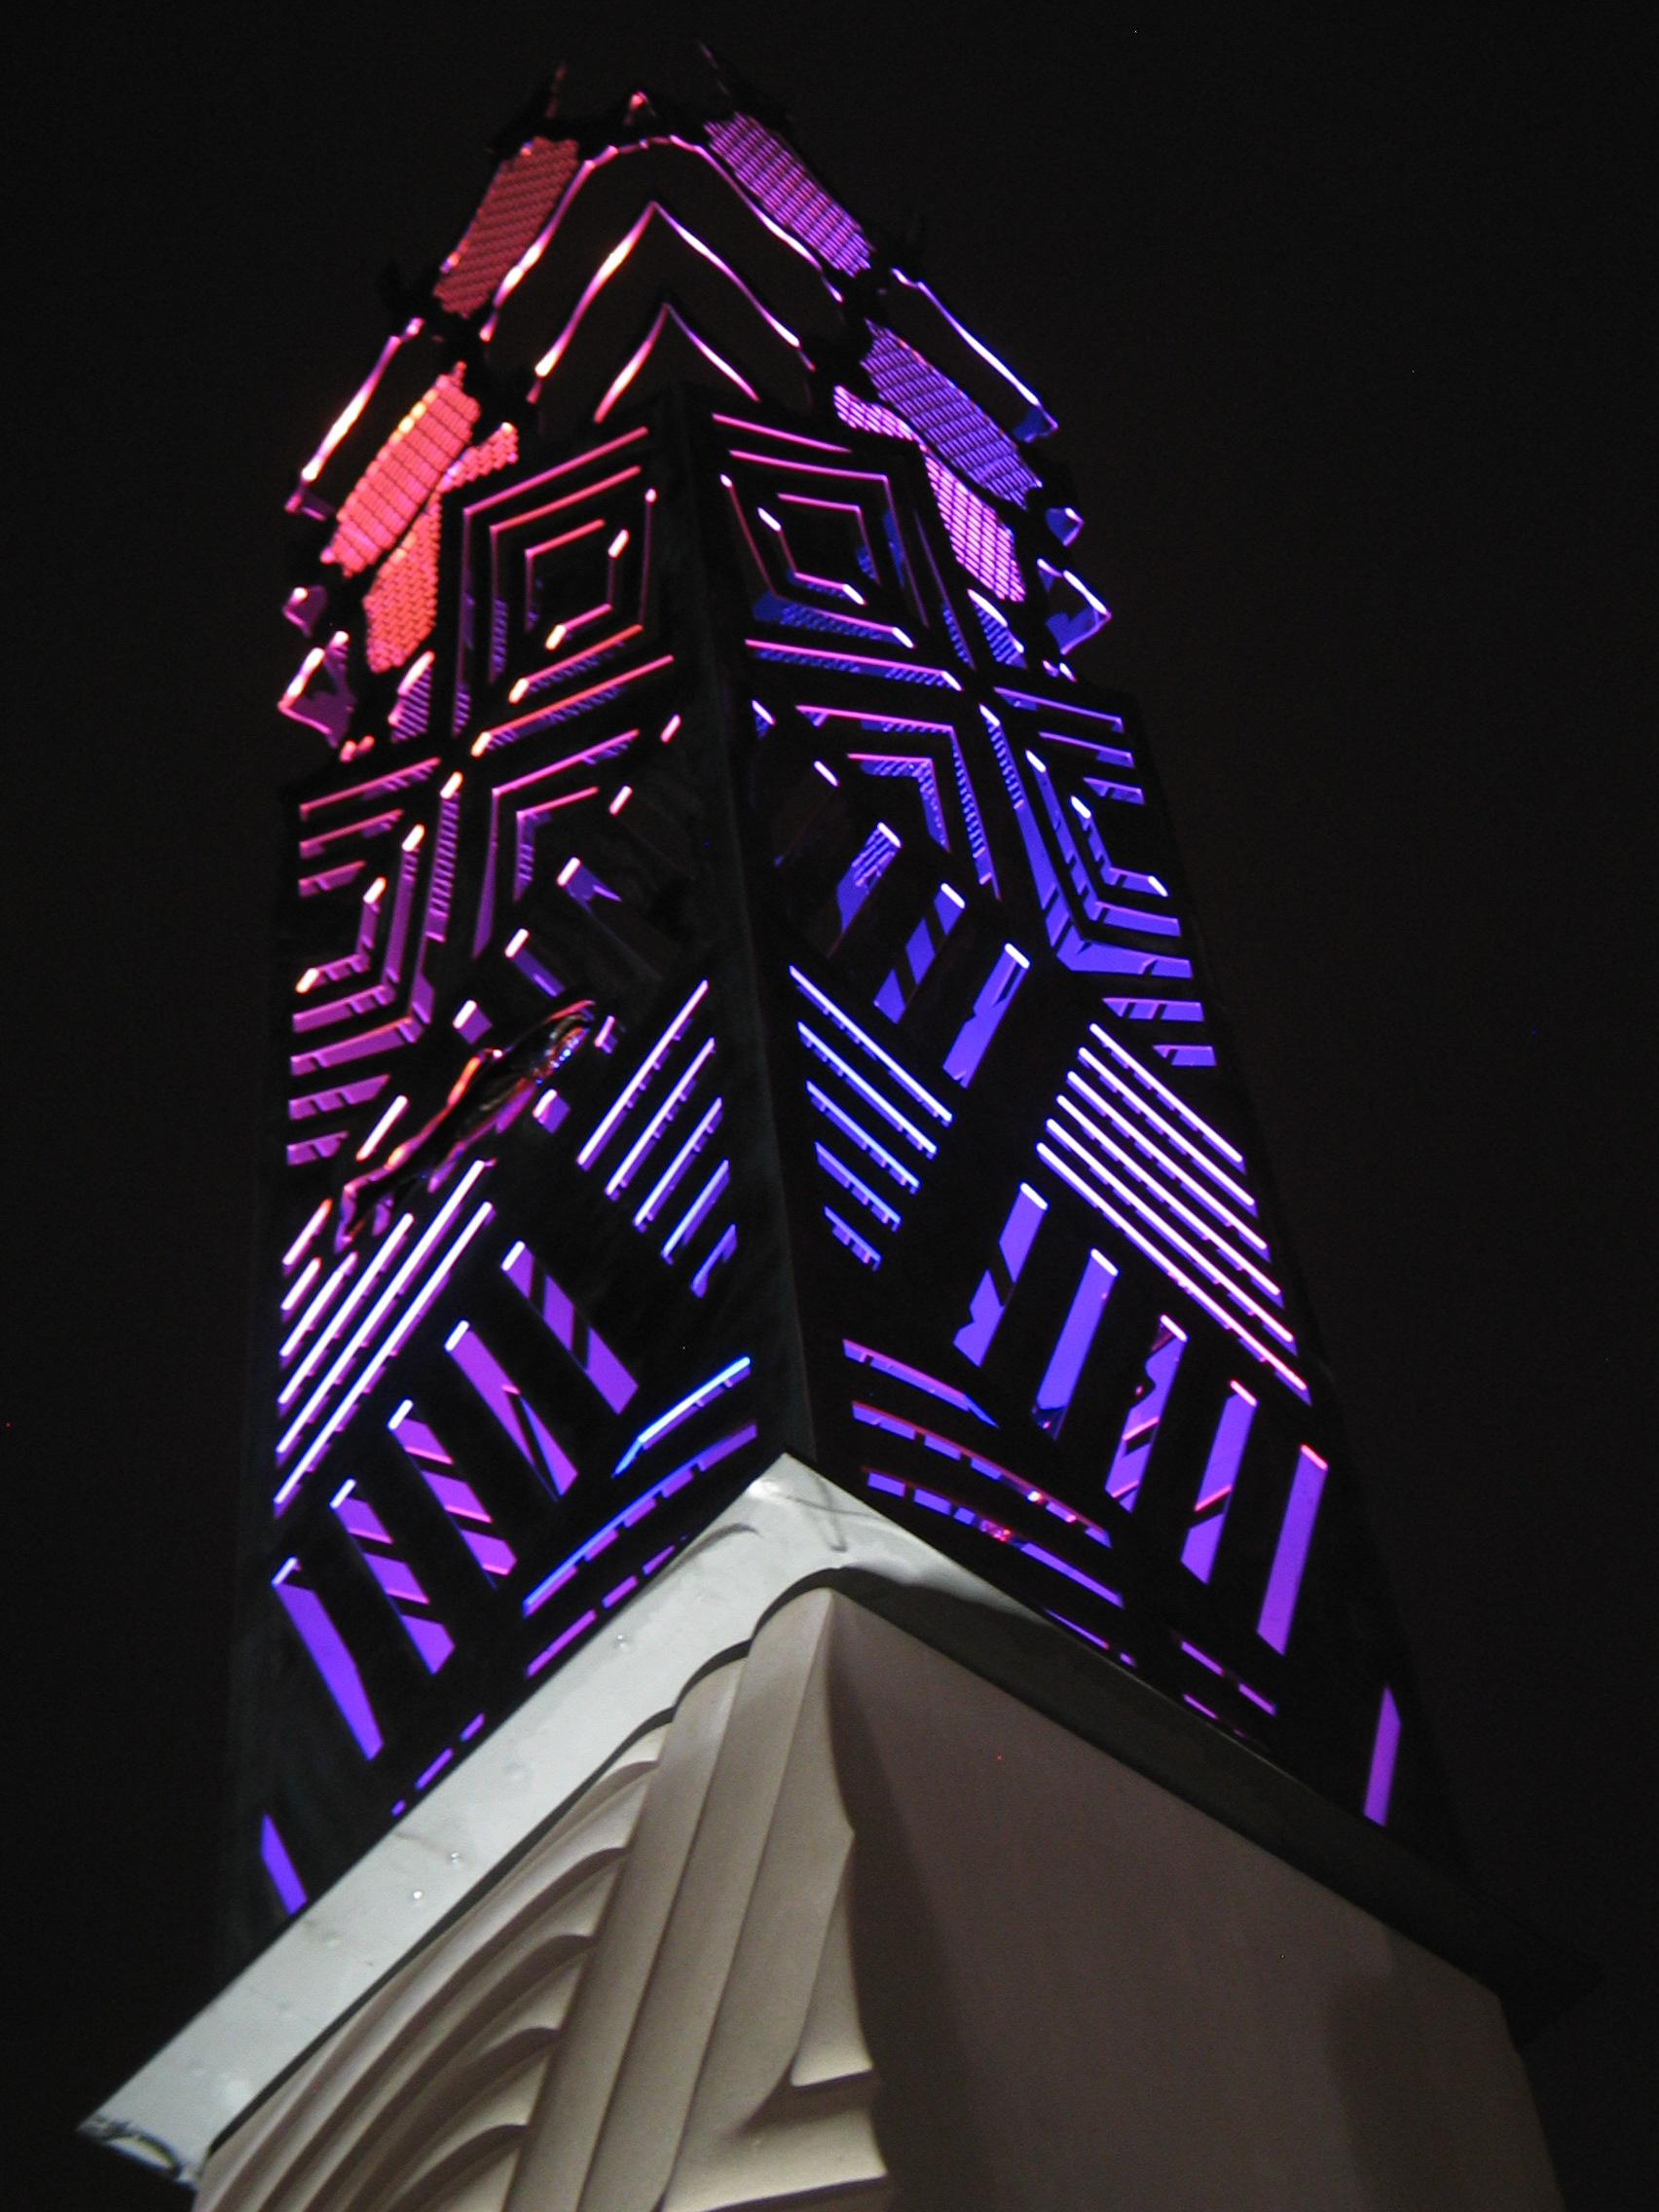 Color-changing LED fixtures light up this installation at night.